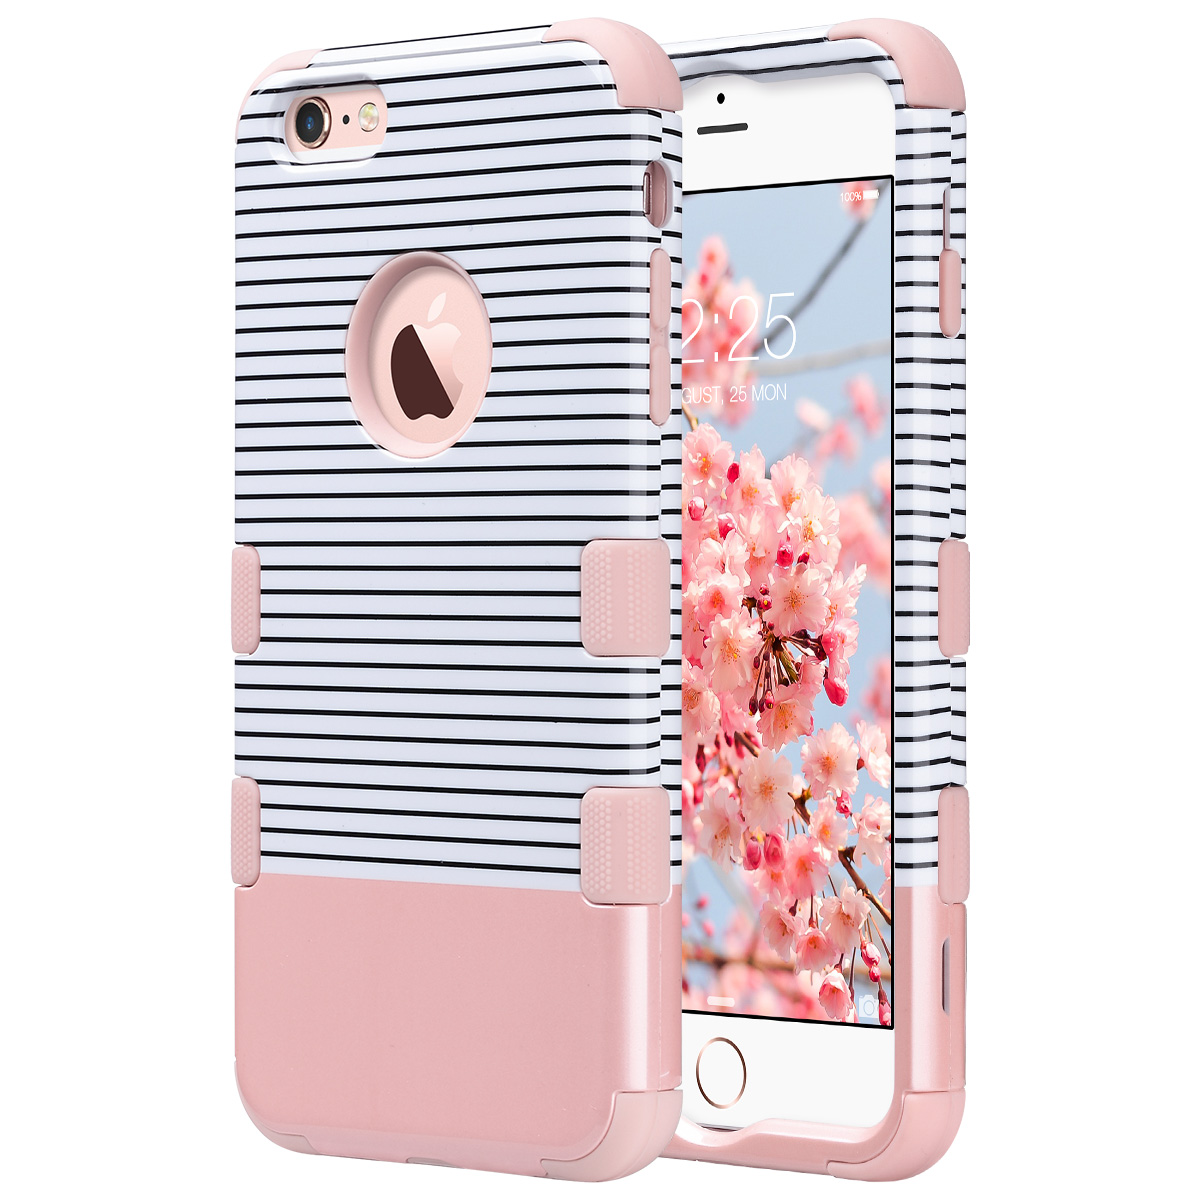 iPhone 6S Plus Case,iPhone 6 Plus Case, ULAK Shockproof Hybrid High Impact Hard Plastic + Soft Silicone Rubber Case Cover for Apple iPhone 6S Plus / 6 Plus 5.5 inch - Rose Gold